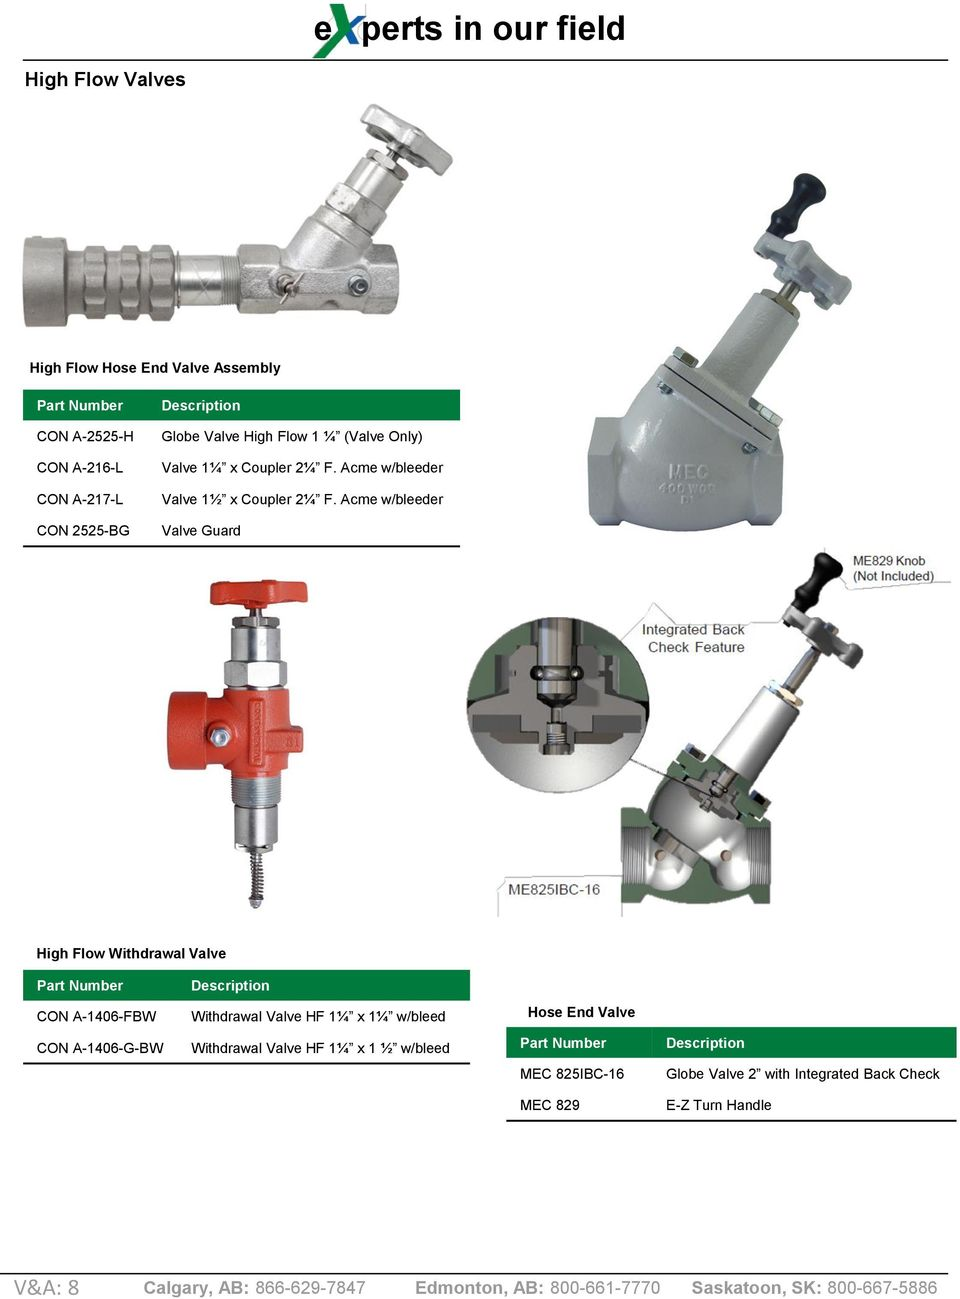 Acme w/bleeder Valve Guard High Flow Withdrawal Valve CON A-1406-FBW Withdrawal Valve HF 1¼ x 1¼ w/bleed Hose End